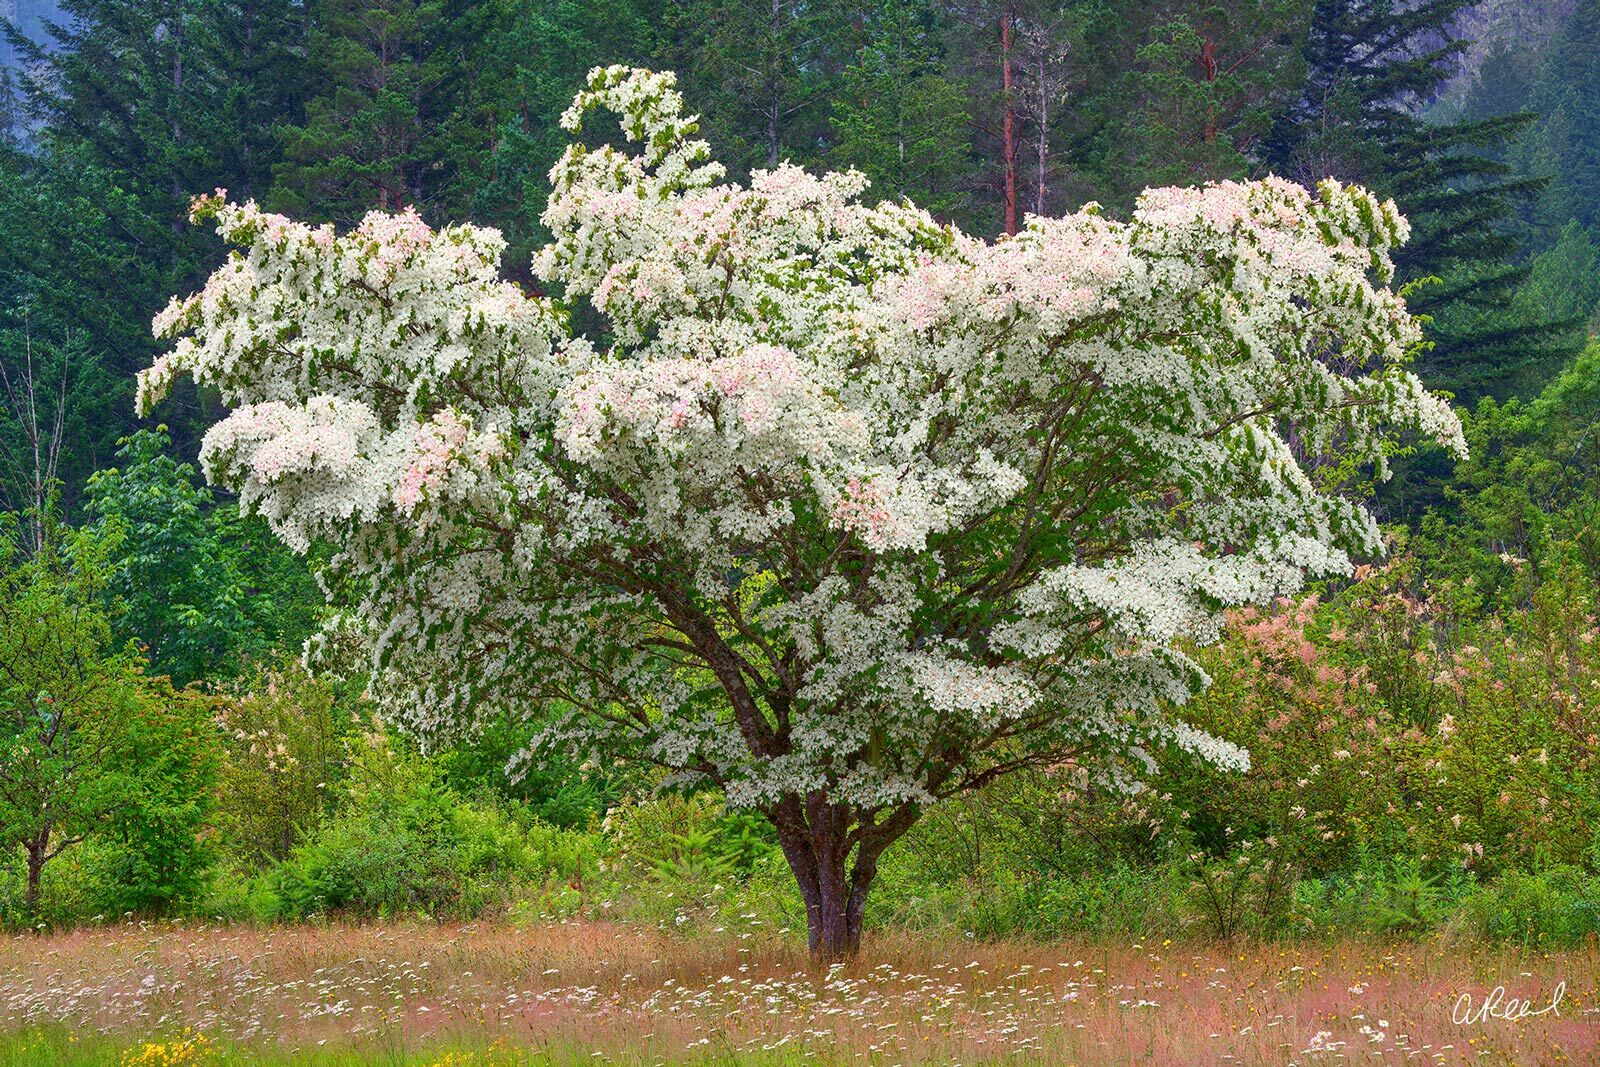 A photograph of a single dogwood tree with white and pink flower medals in a field.